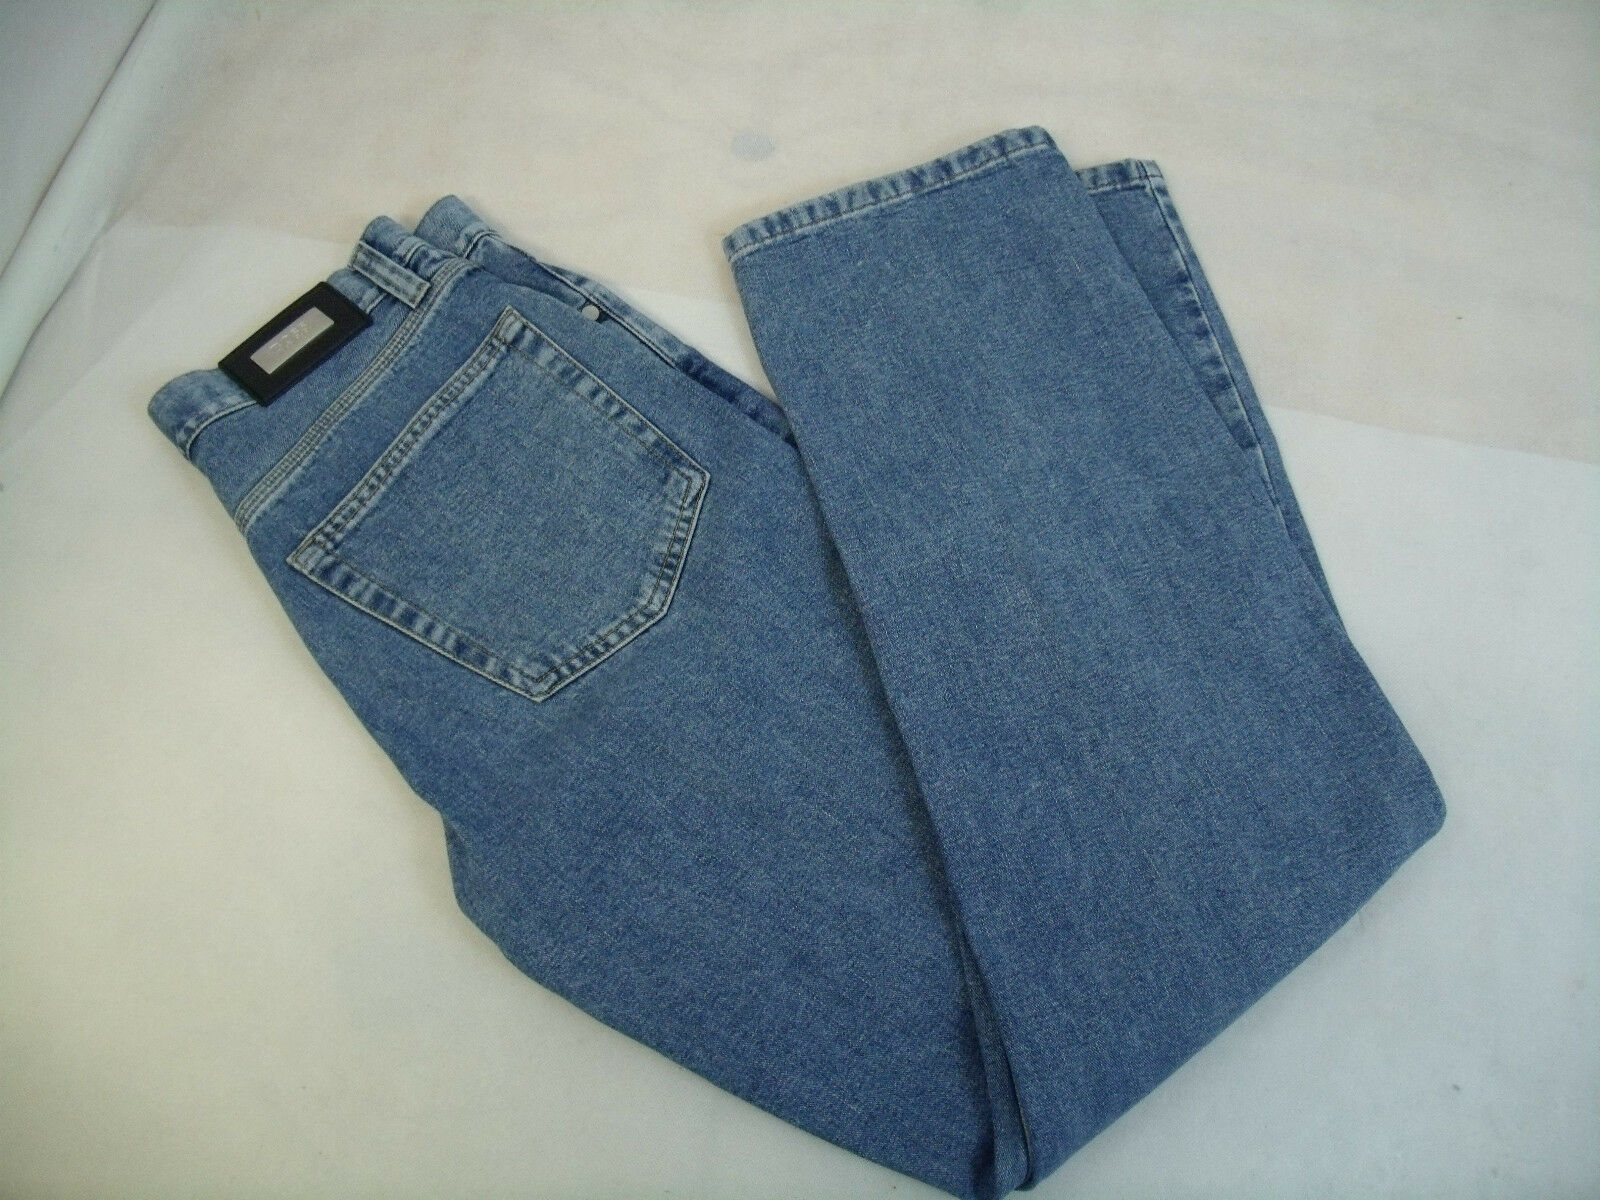 C327 HUGO BOSS ALABAMA 05060 JEANS  SIZE 30 32  MINT CONDITION